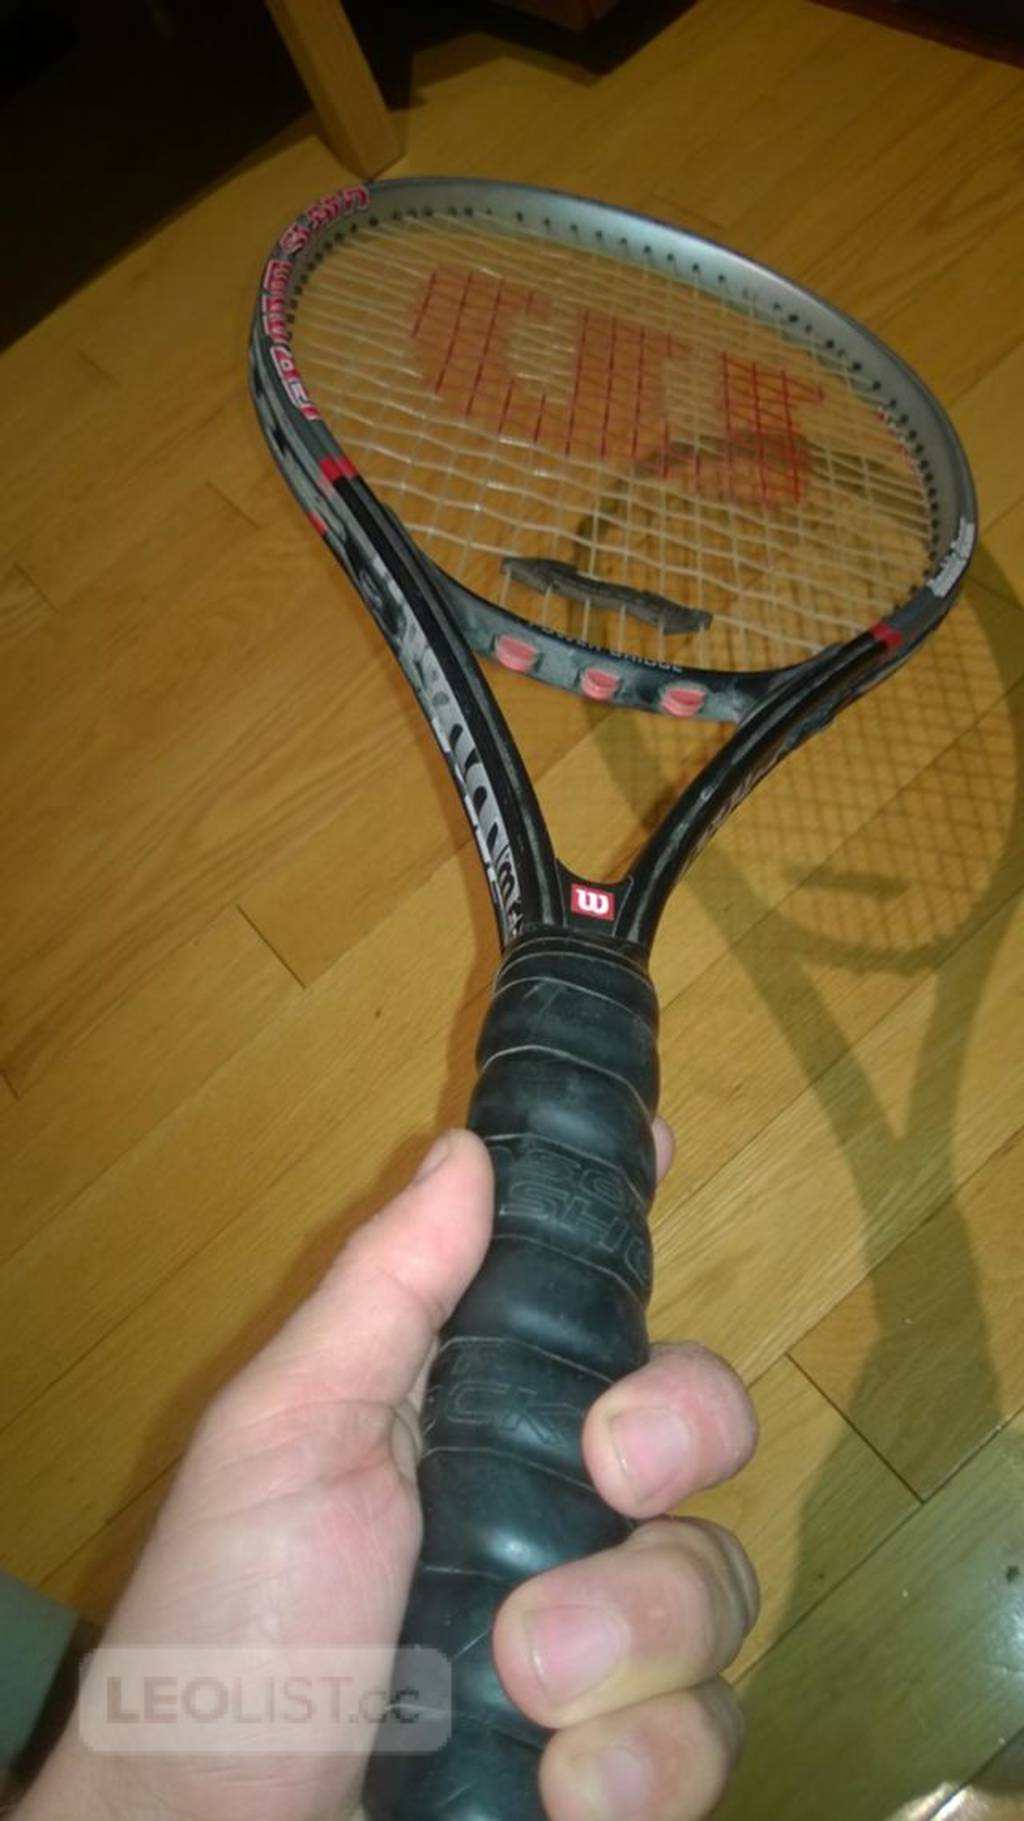 $40, Wilson Double beam Tennis Racquet  4 3/8 grip size great shape